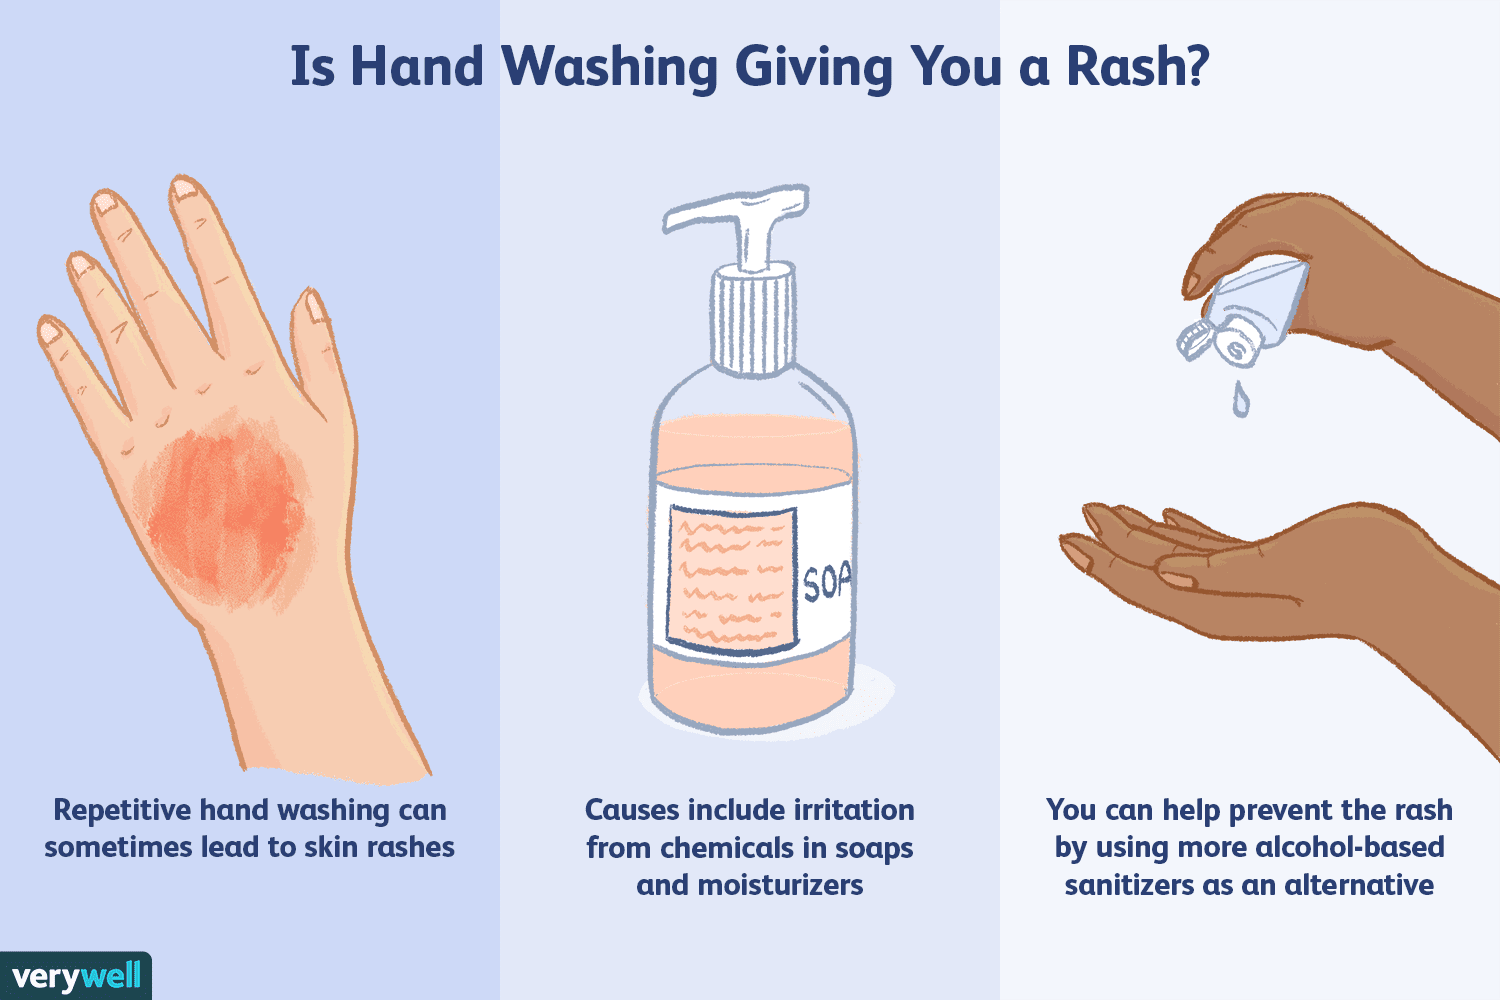 Allergic Reactions to Hand-Washing